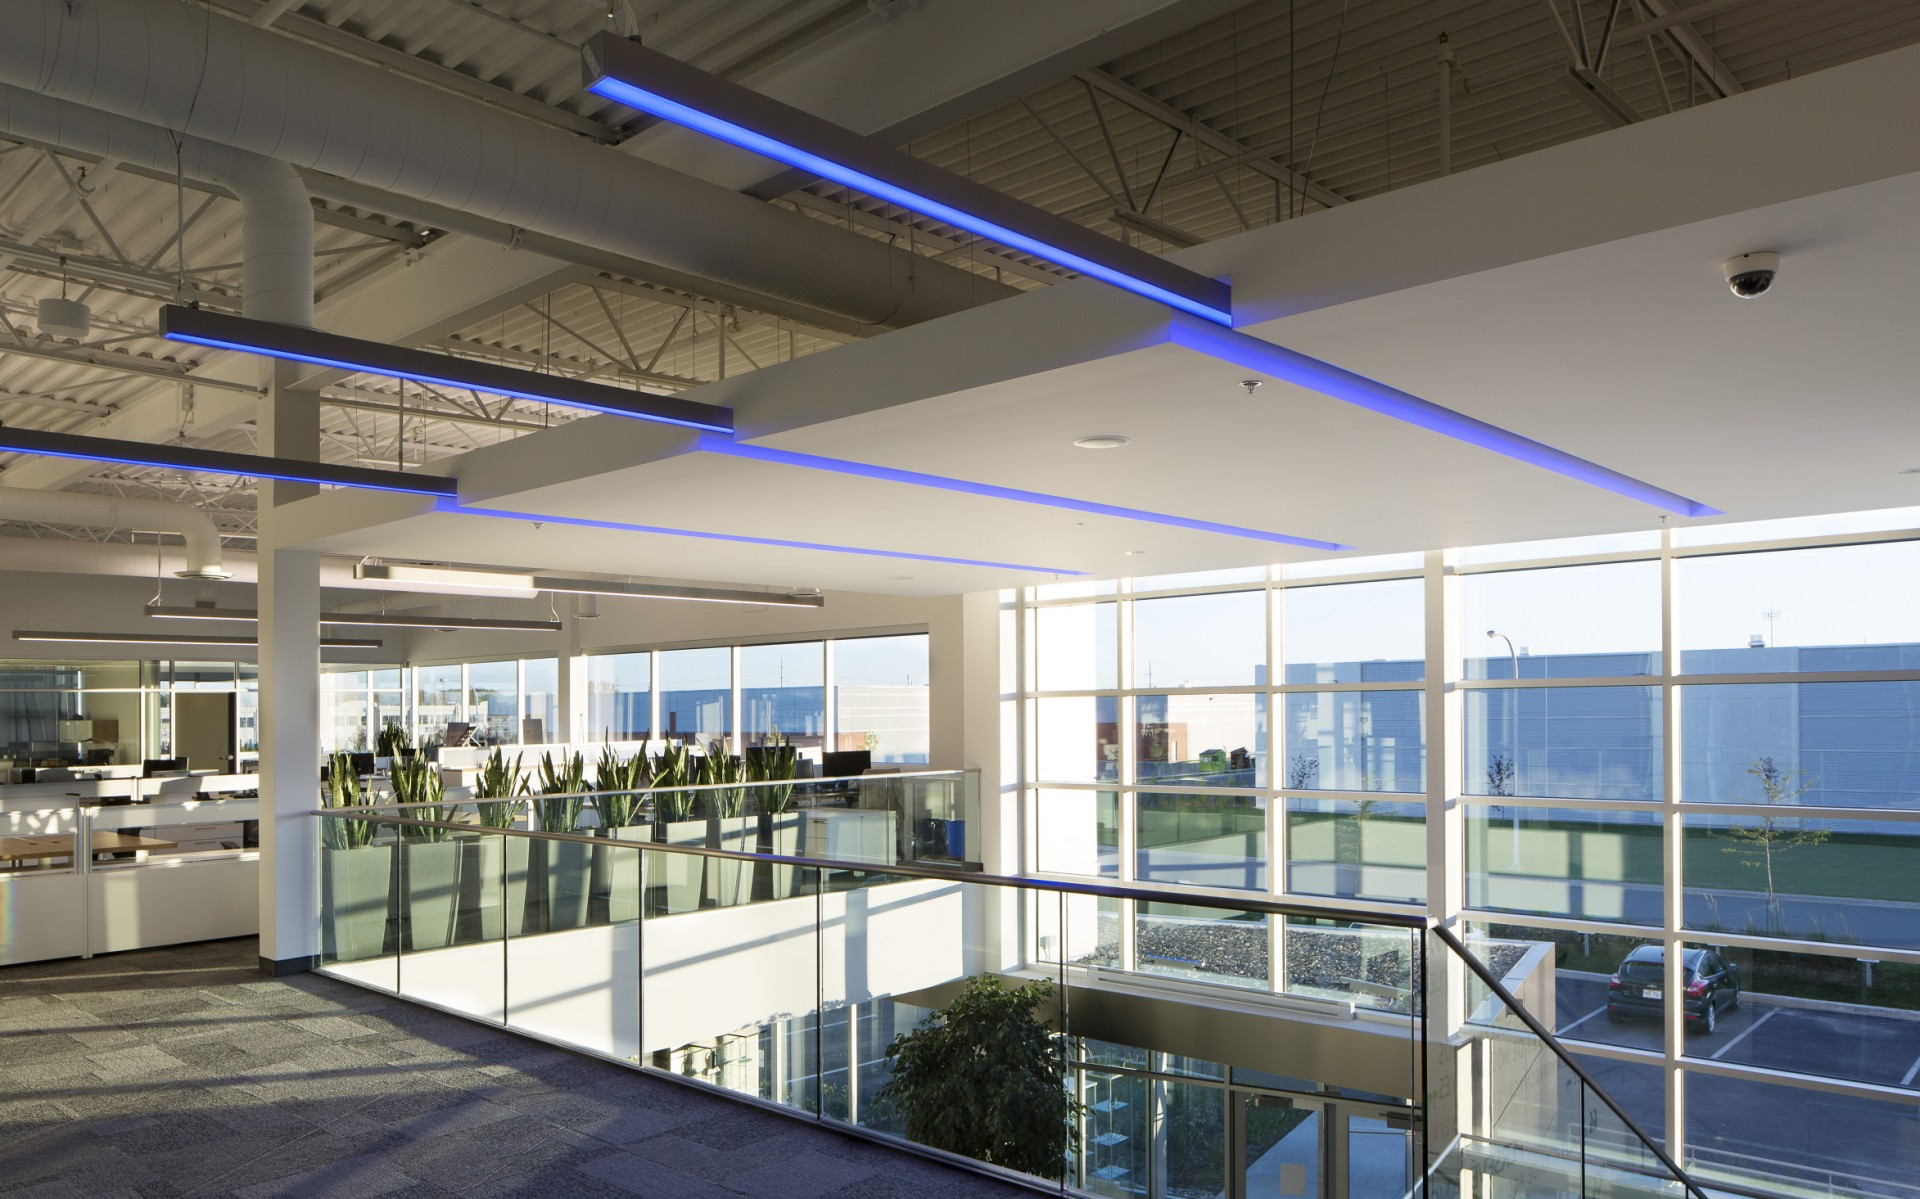 The atrium is illuminated with Lumenline RGB luminaires, creating continuous lines of color.